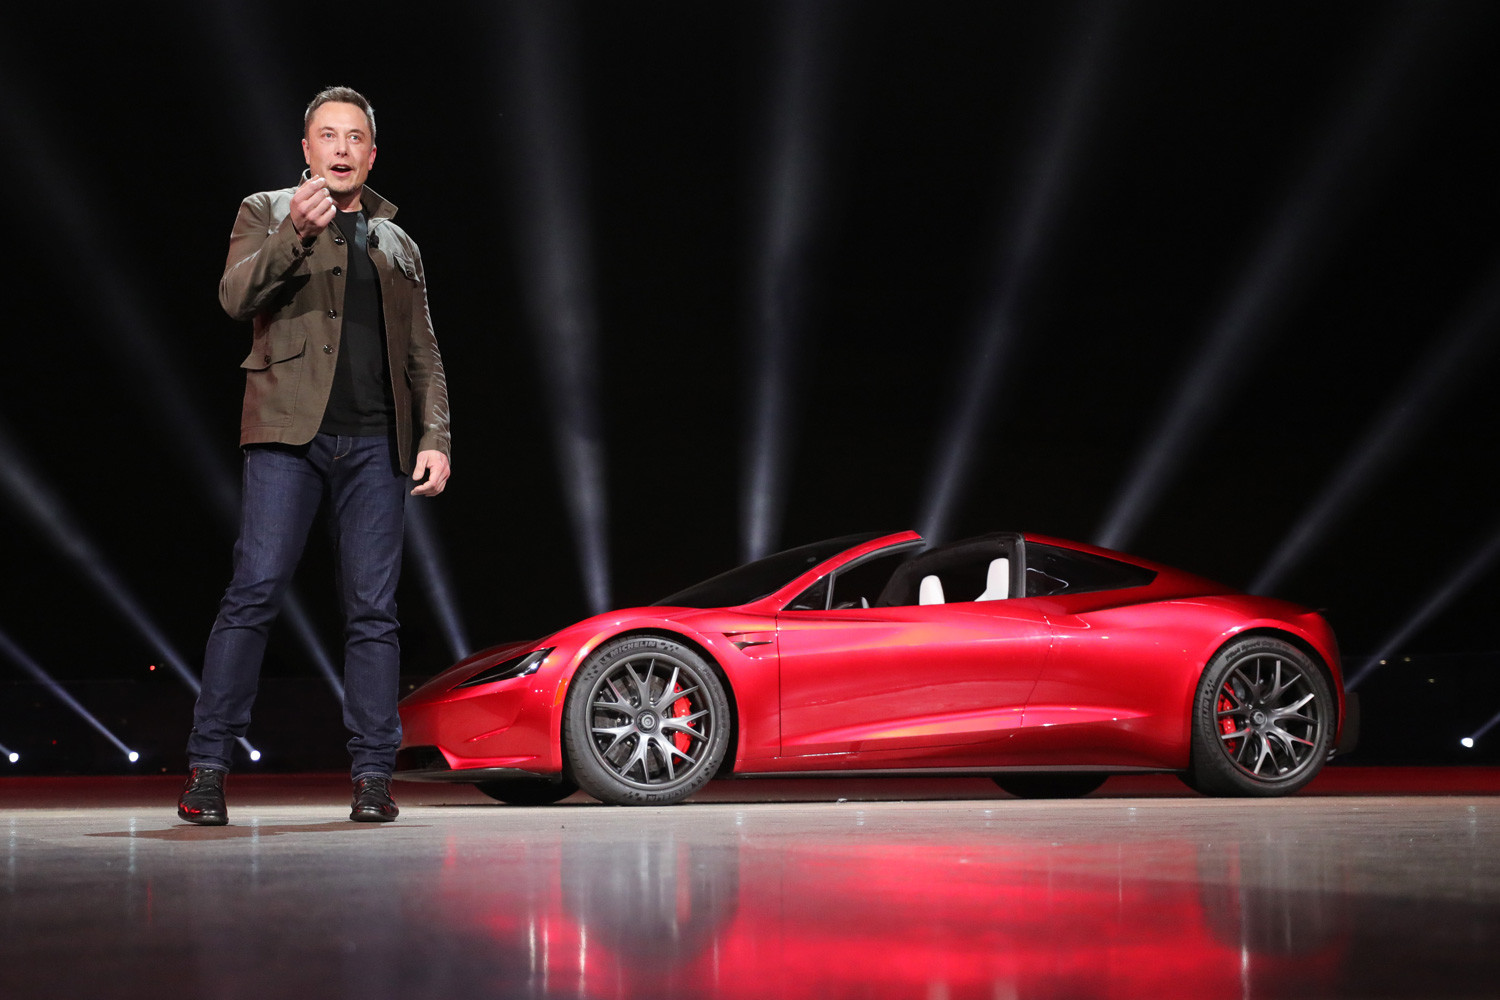 Електромобил Tesla Motors 2020 Roadster, САЩ, 2017 г.